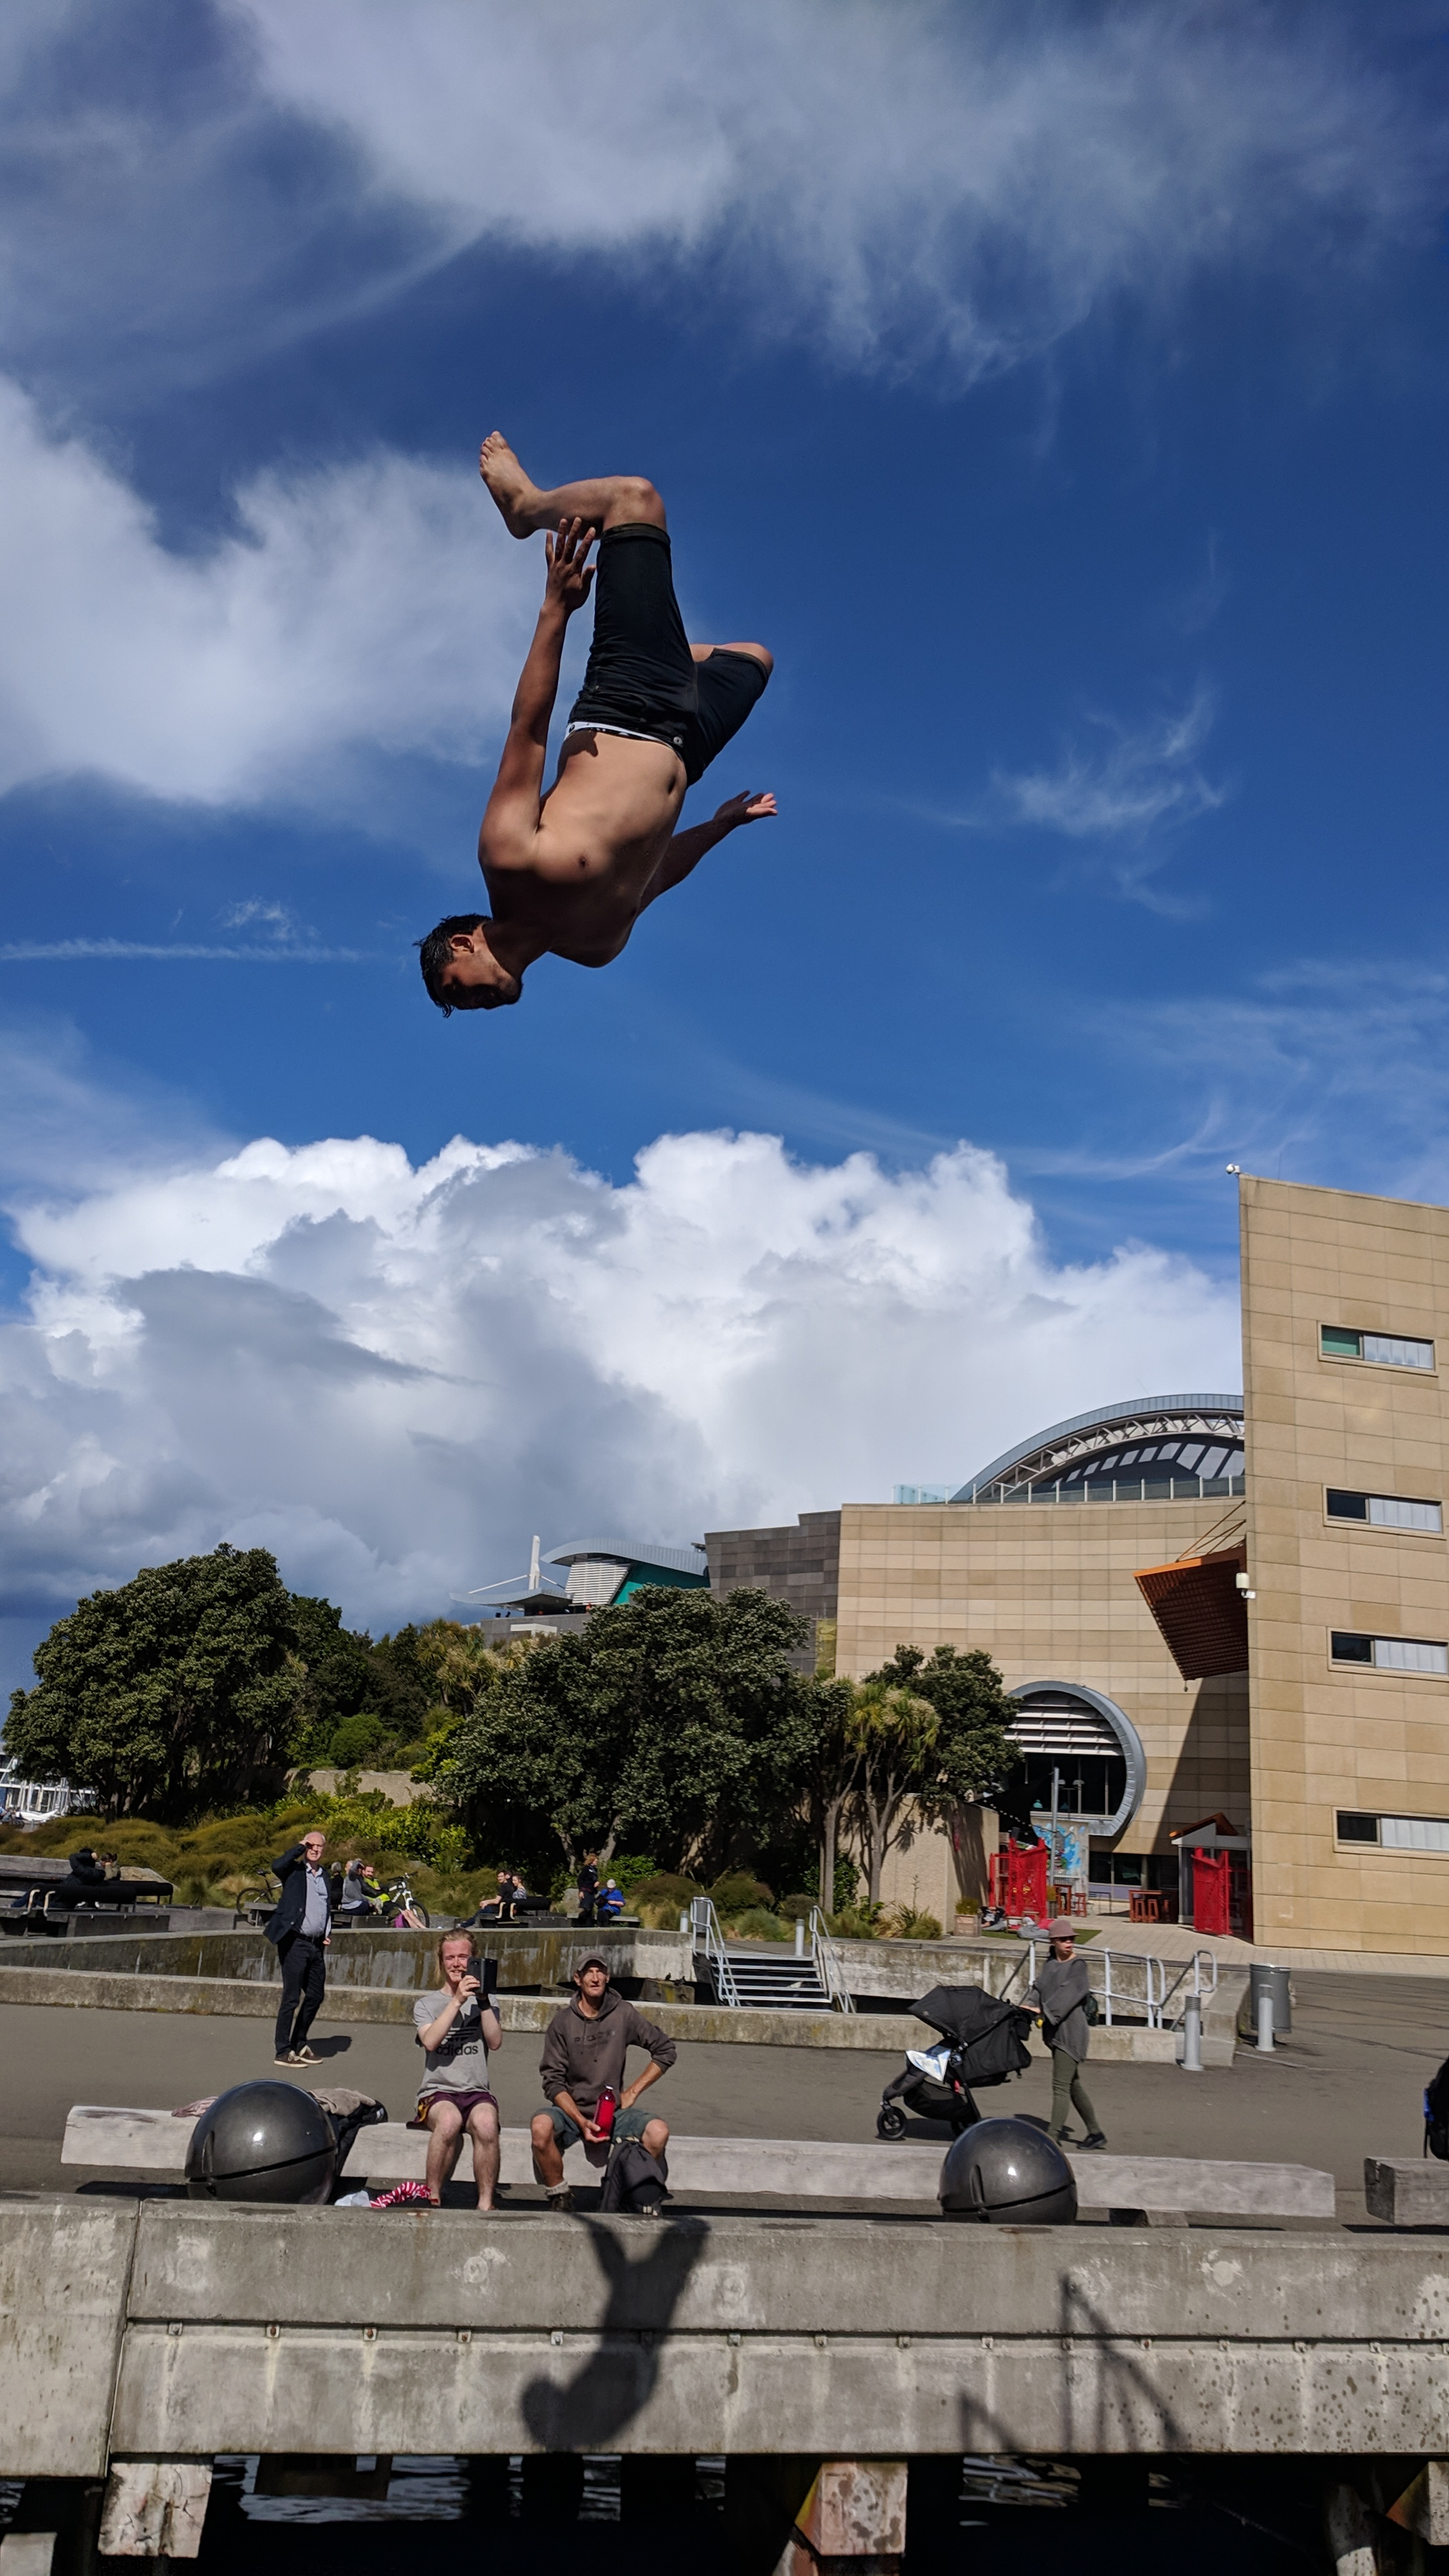 Diving into the Wellington Harbour with Te Papa museum in the background